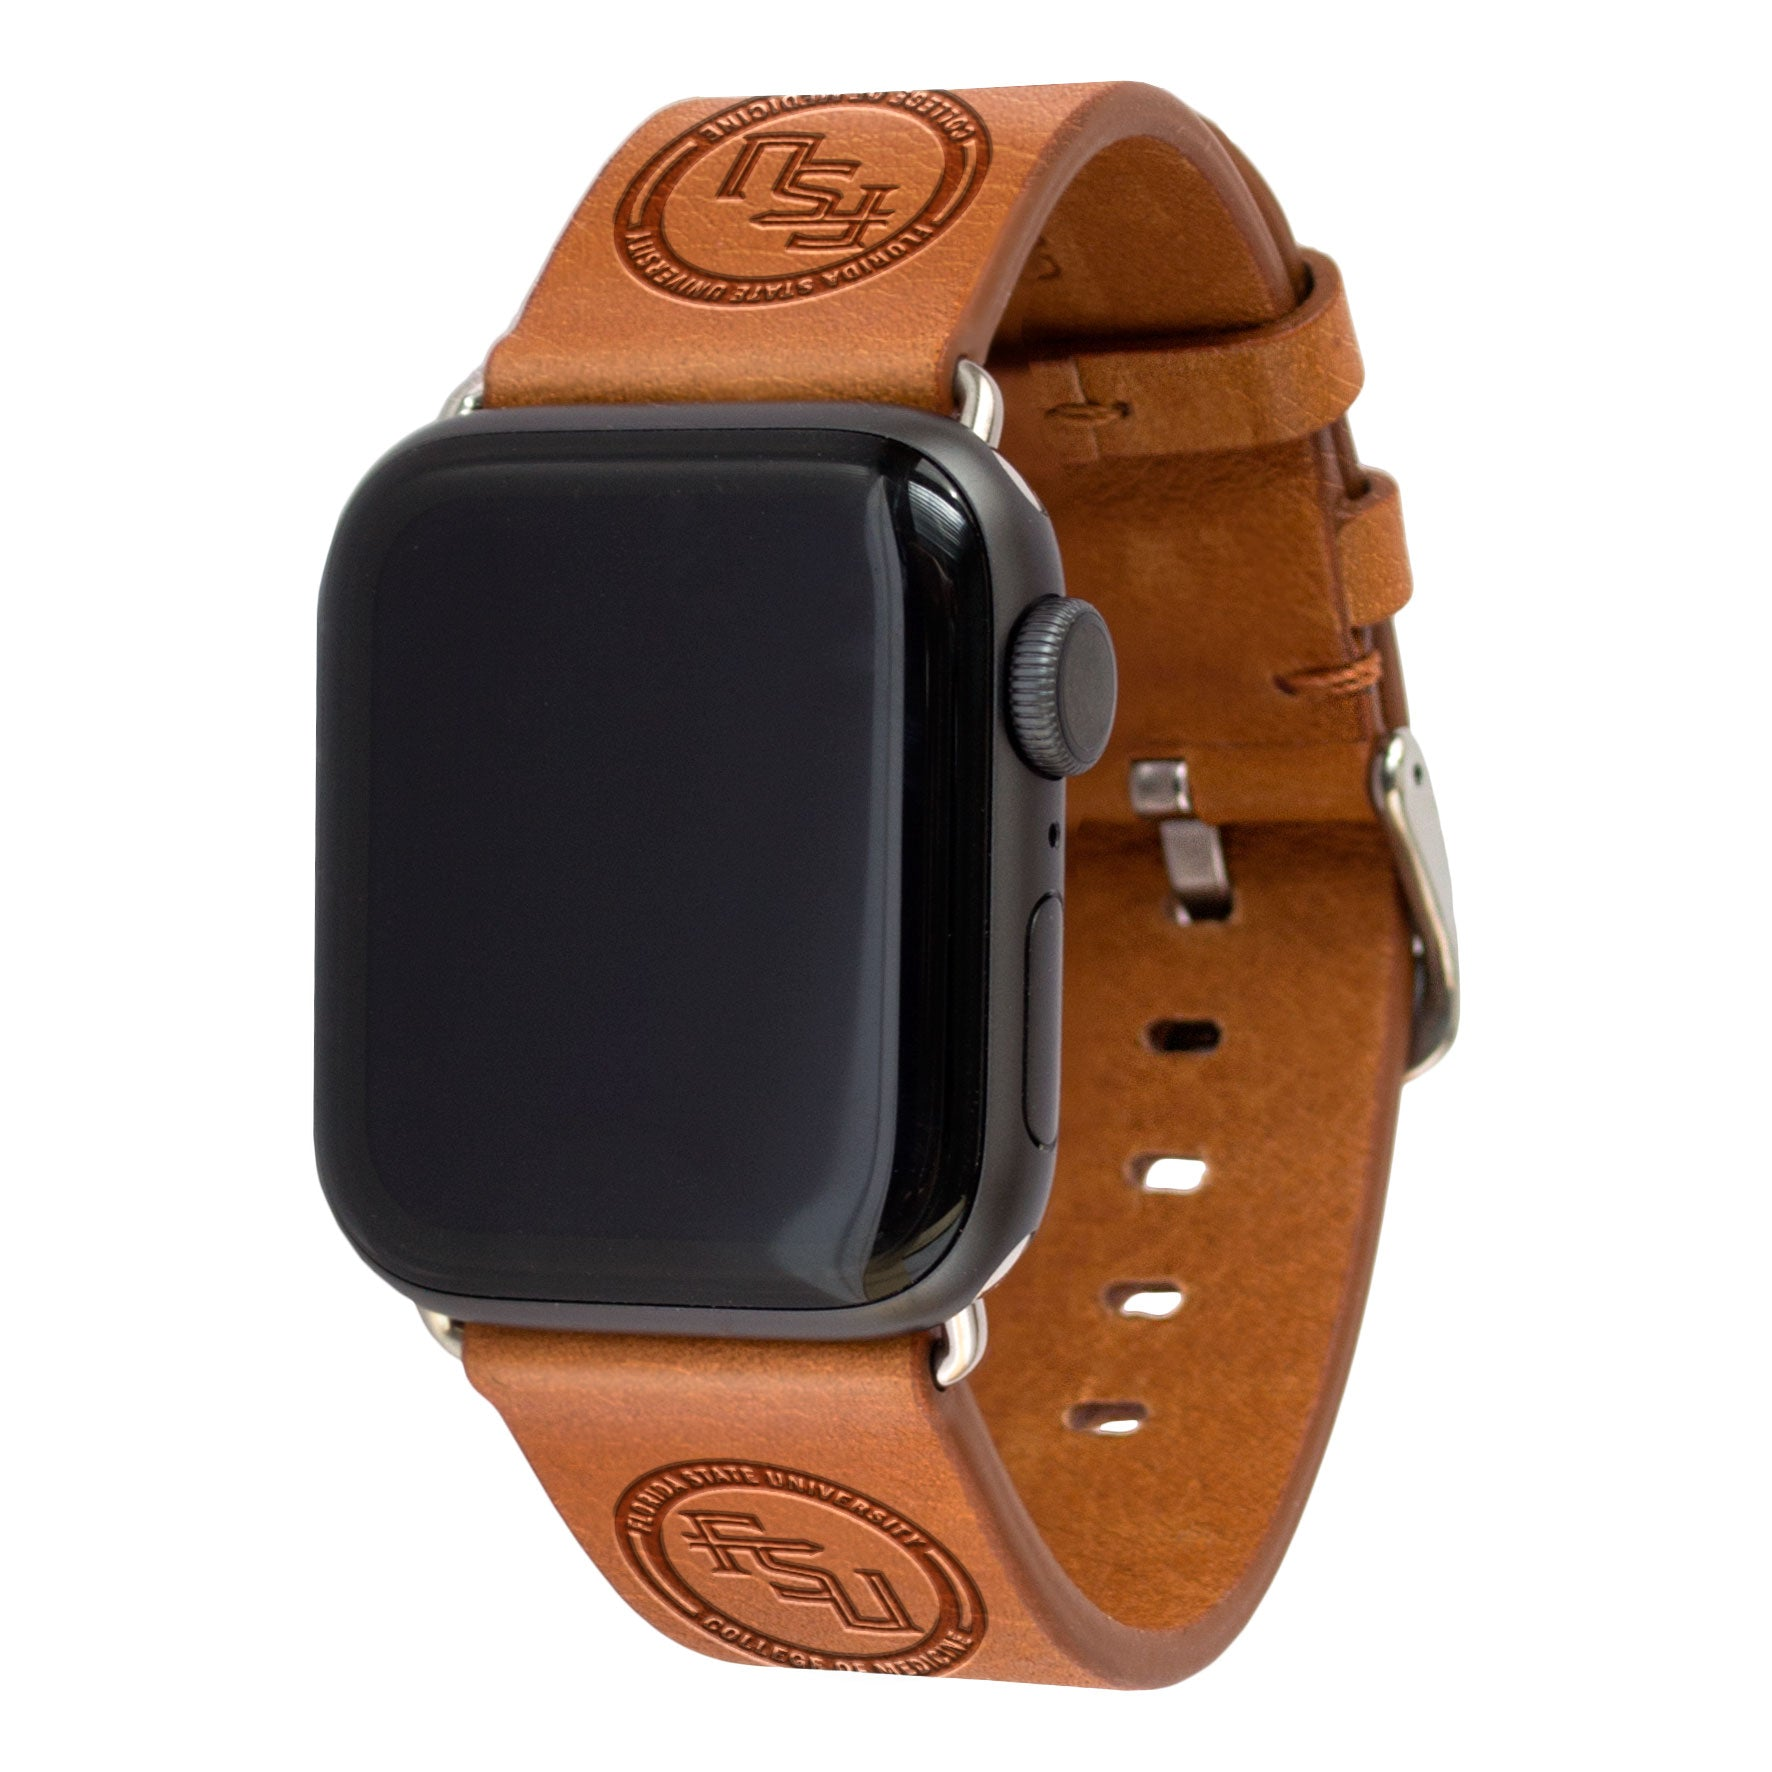 Florida State University College of Medicine Leather Apple Watch Band